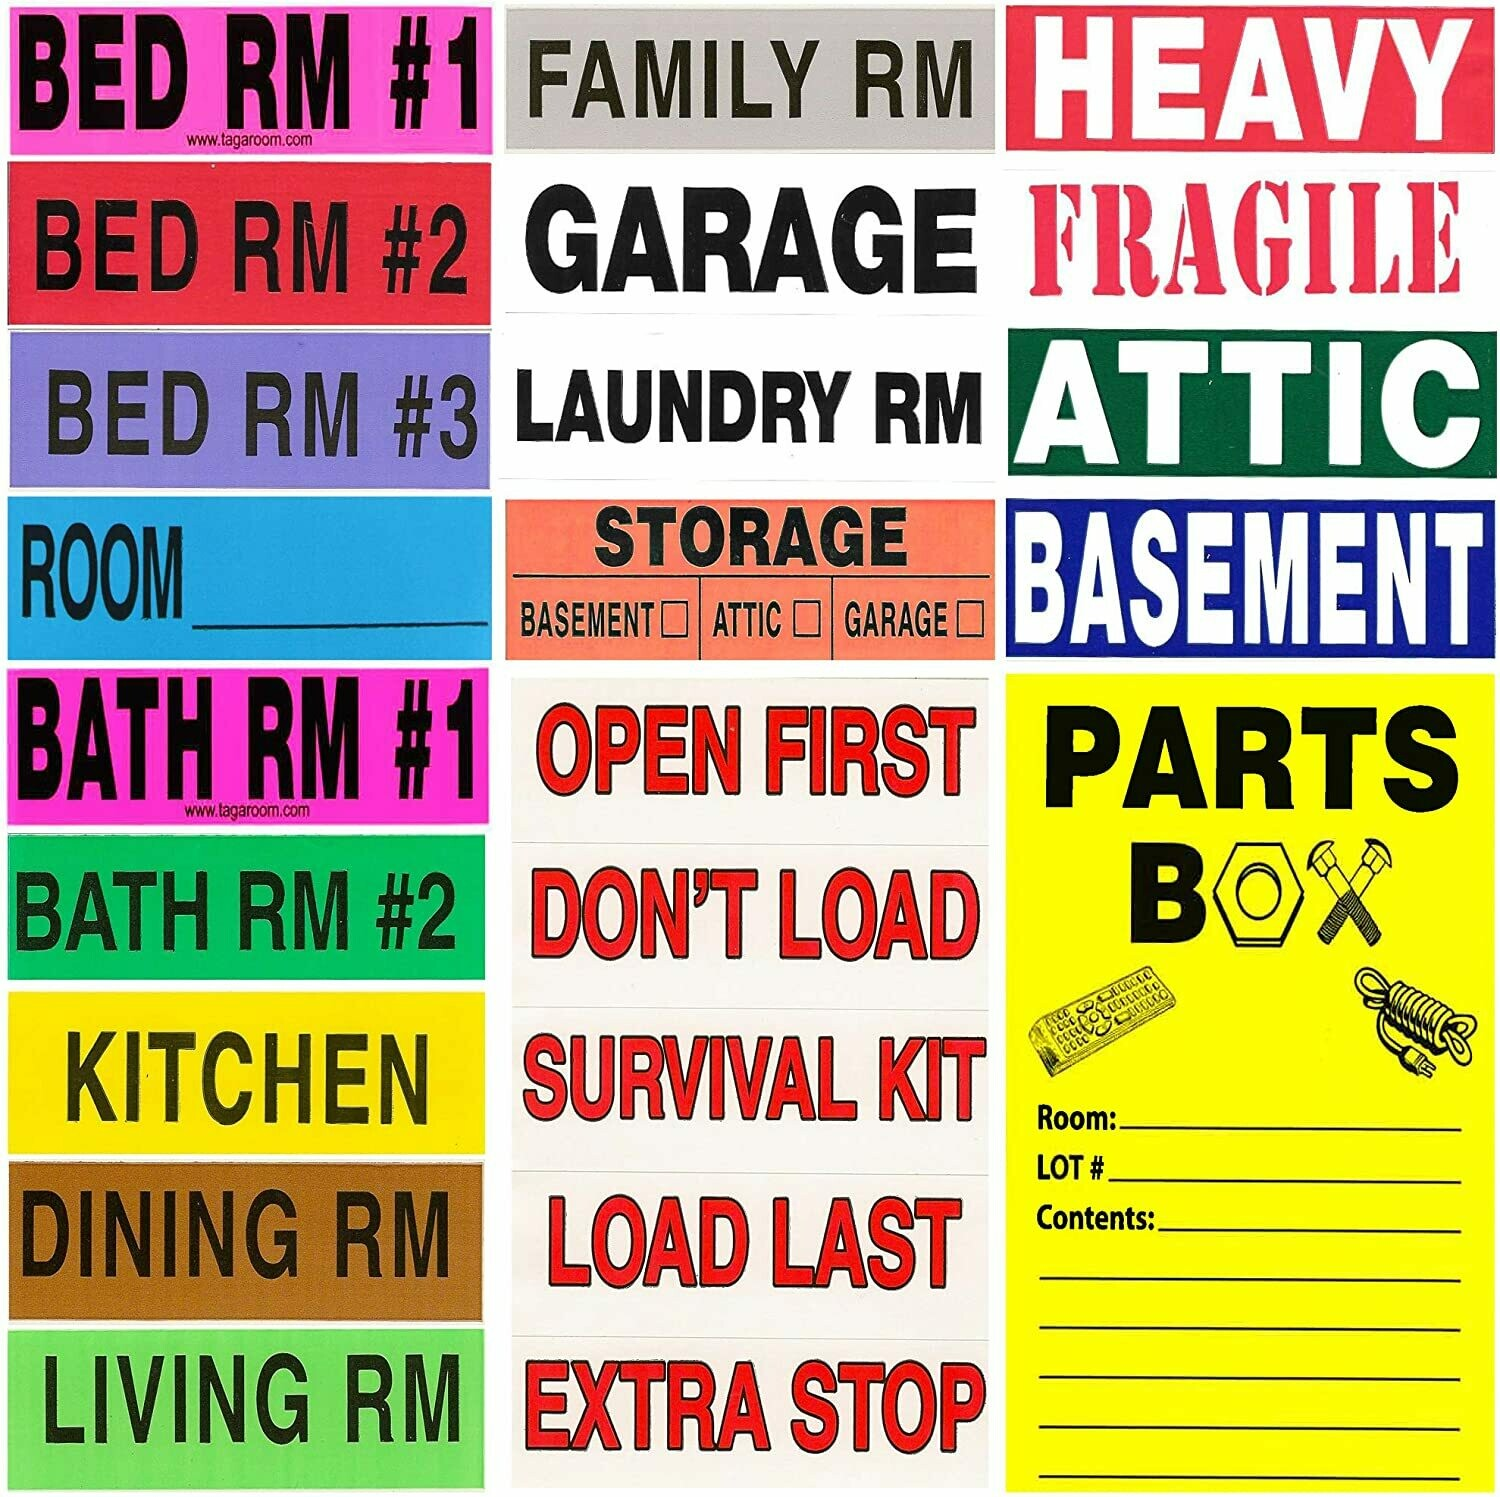 Tag-A-Room Color Coding Home Moving Labels 950 Count with Bonus Parts Box Labels